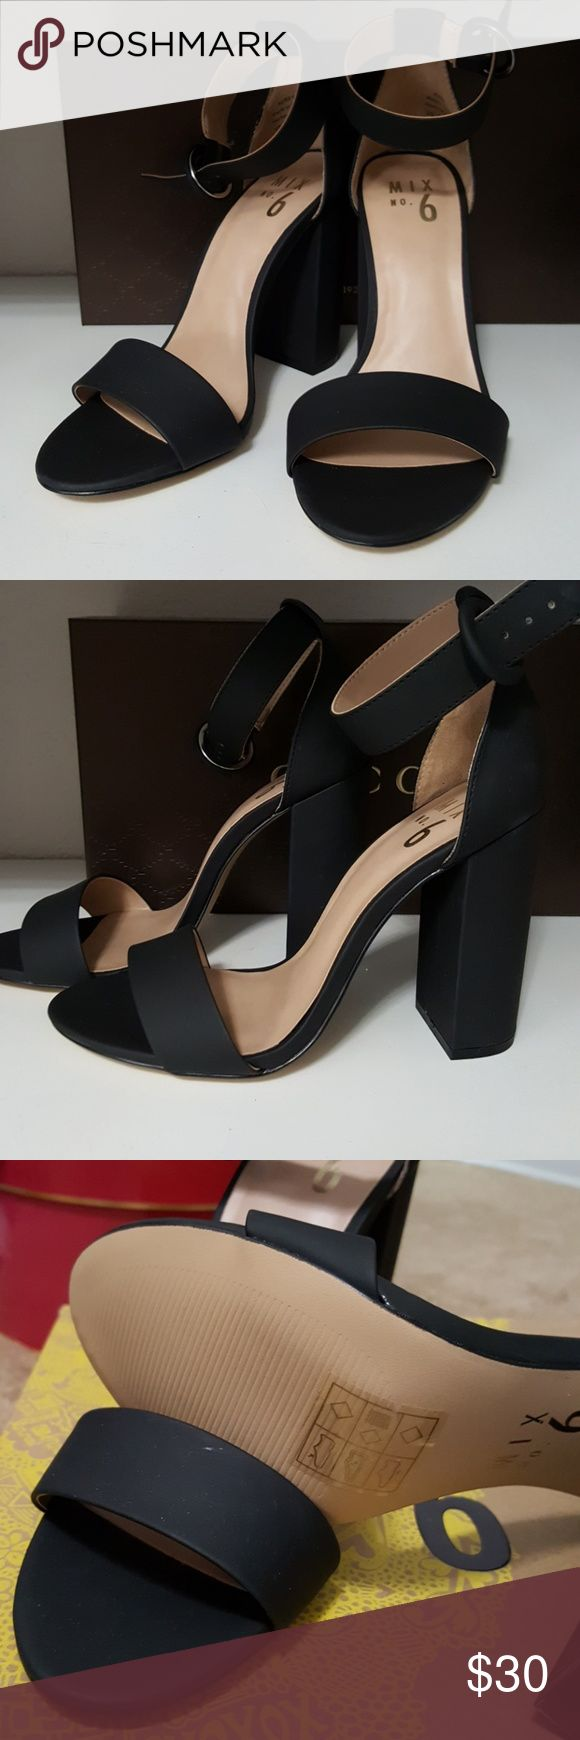 """Mix No. 6 Open Toe Black High Heel Chic and sassy open toe black high heels. Purchased from DSW but never wore. The heels are too high for me. Heel height is 4.25"""". Blocked heel. This pair is the same as seen on Olivia Culpo.   Shoe size is 7 medium  These are new with box, never worn.  https://www.popsugar.com/fashion/Olivia-Culpo-Fashion-Interview-April-2017-43444174 Mix No. 6 Shoes Heels"""